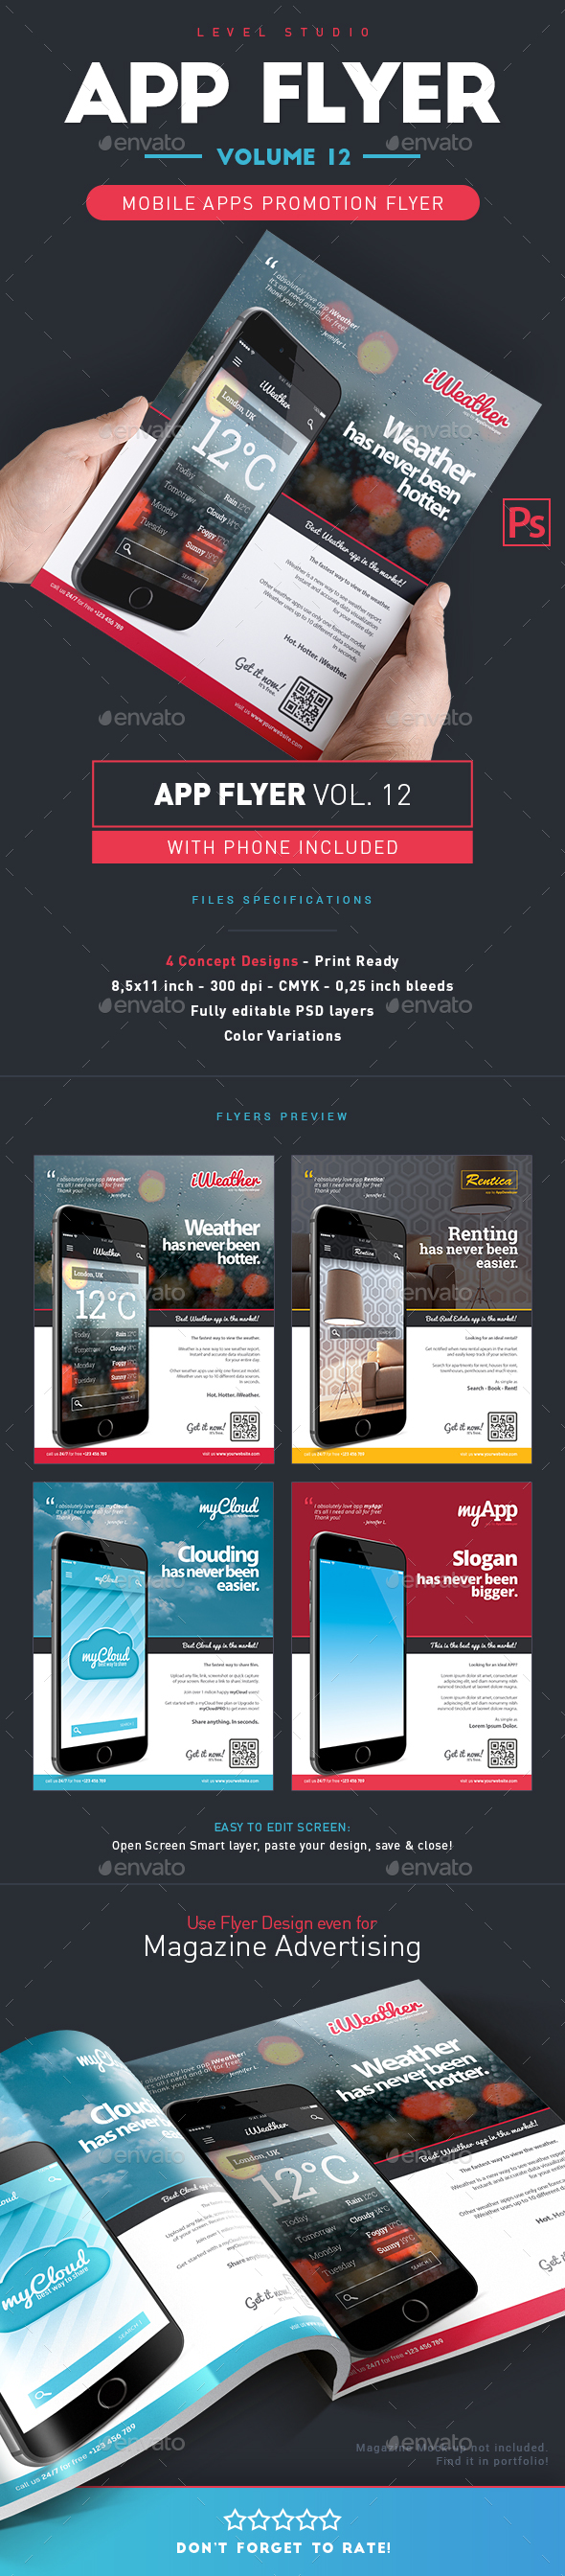 Mobile App Flyers Template 12 - Flyers Print Templates